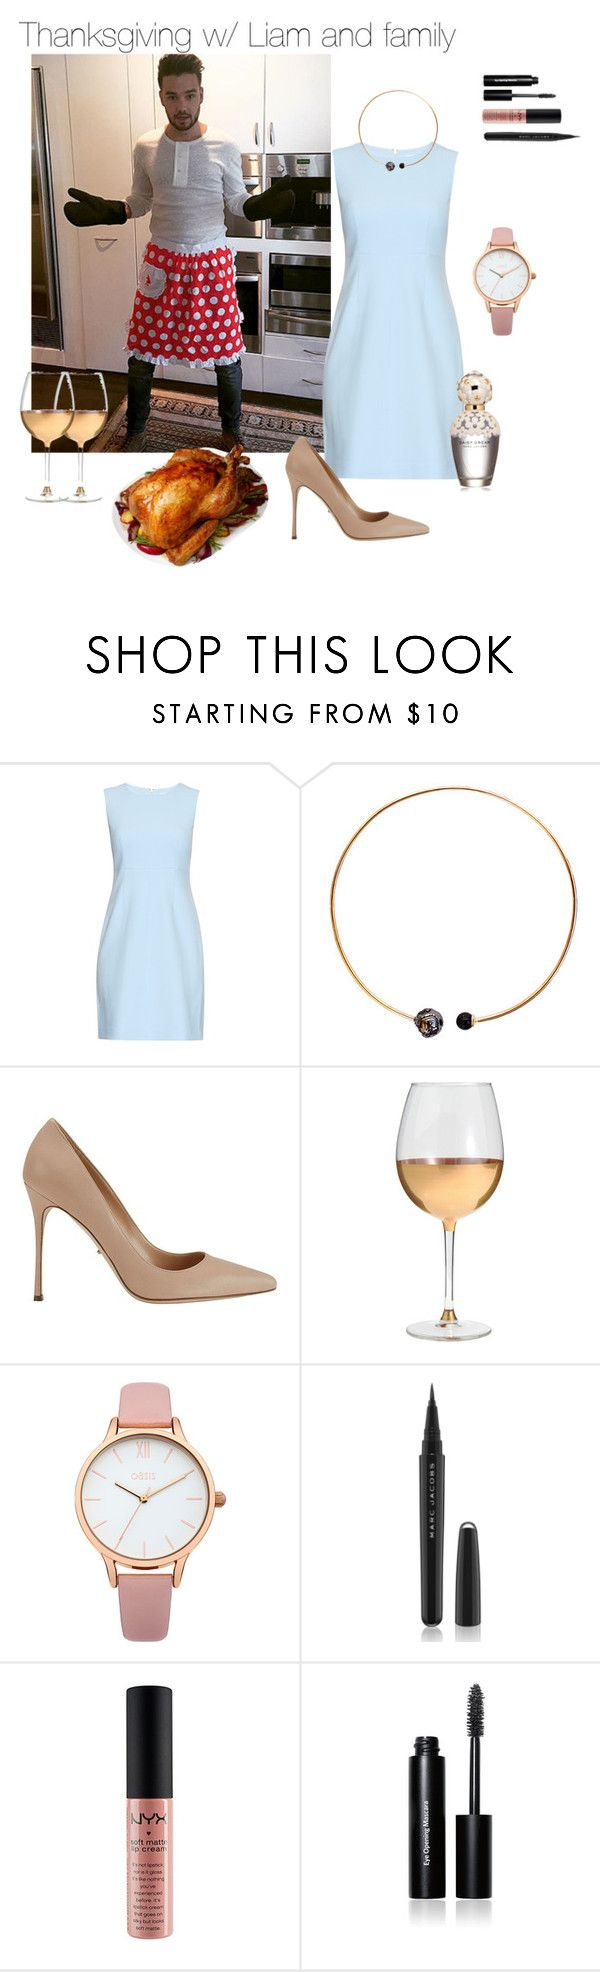 """Untitled #197"" by w3irdgirl ❤ liked on Polyvore featuring Payne, Diane Von Furstenberg, Artelier by Cristina Ramella, Sergio Rossi, Marc Blackwell, Oasis, Marc Jacobs, NYX and Bobbi Brown Cosmetics"